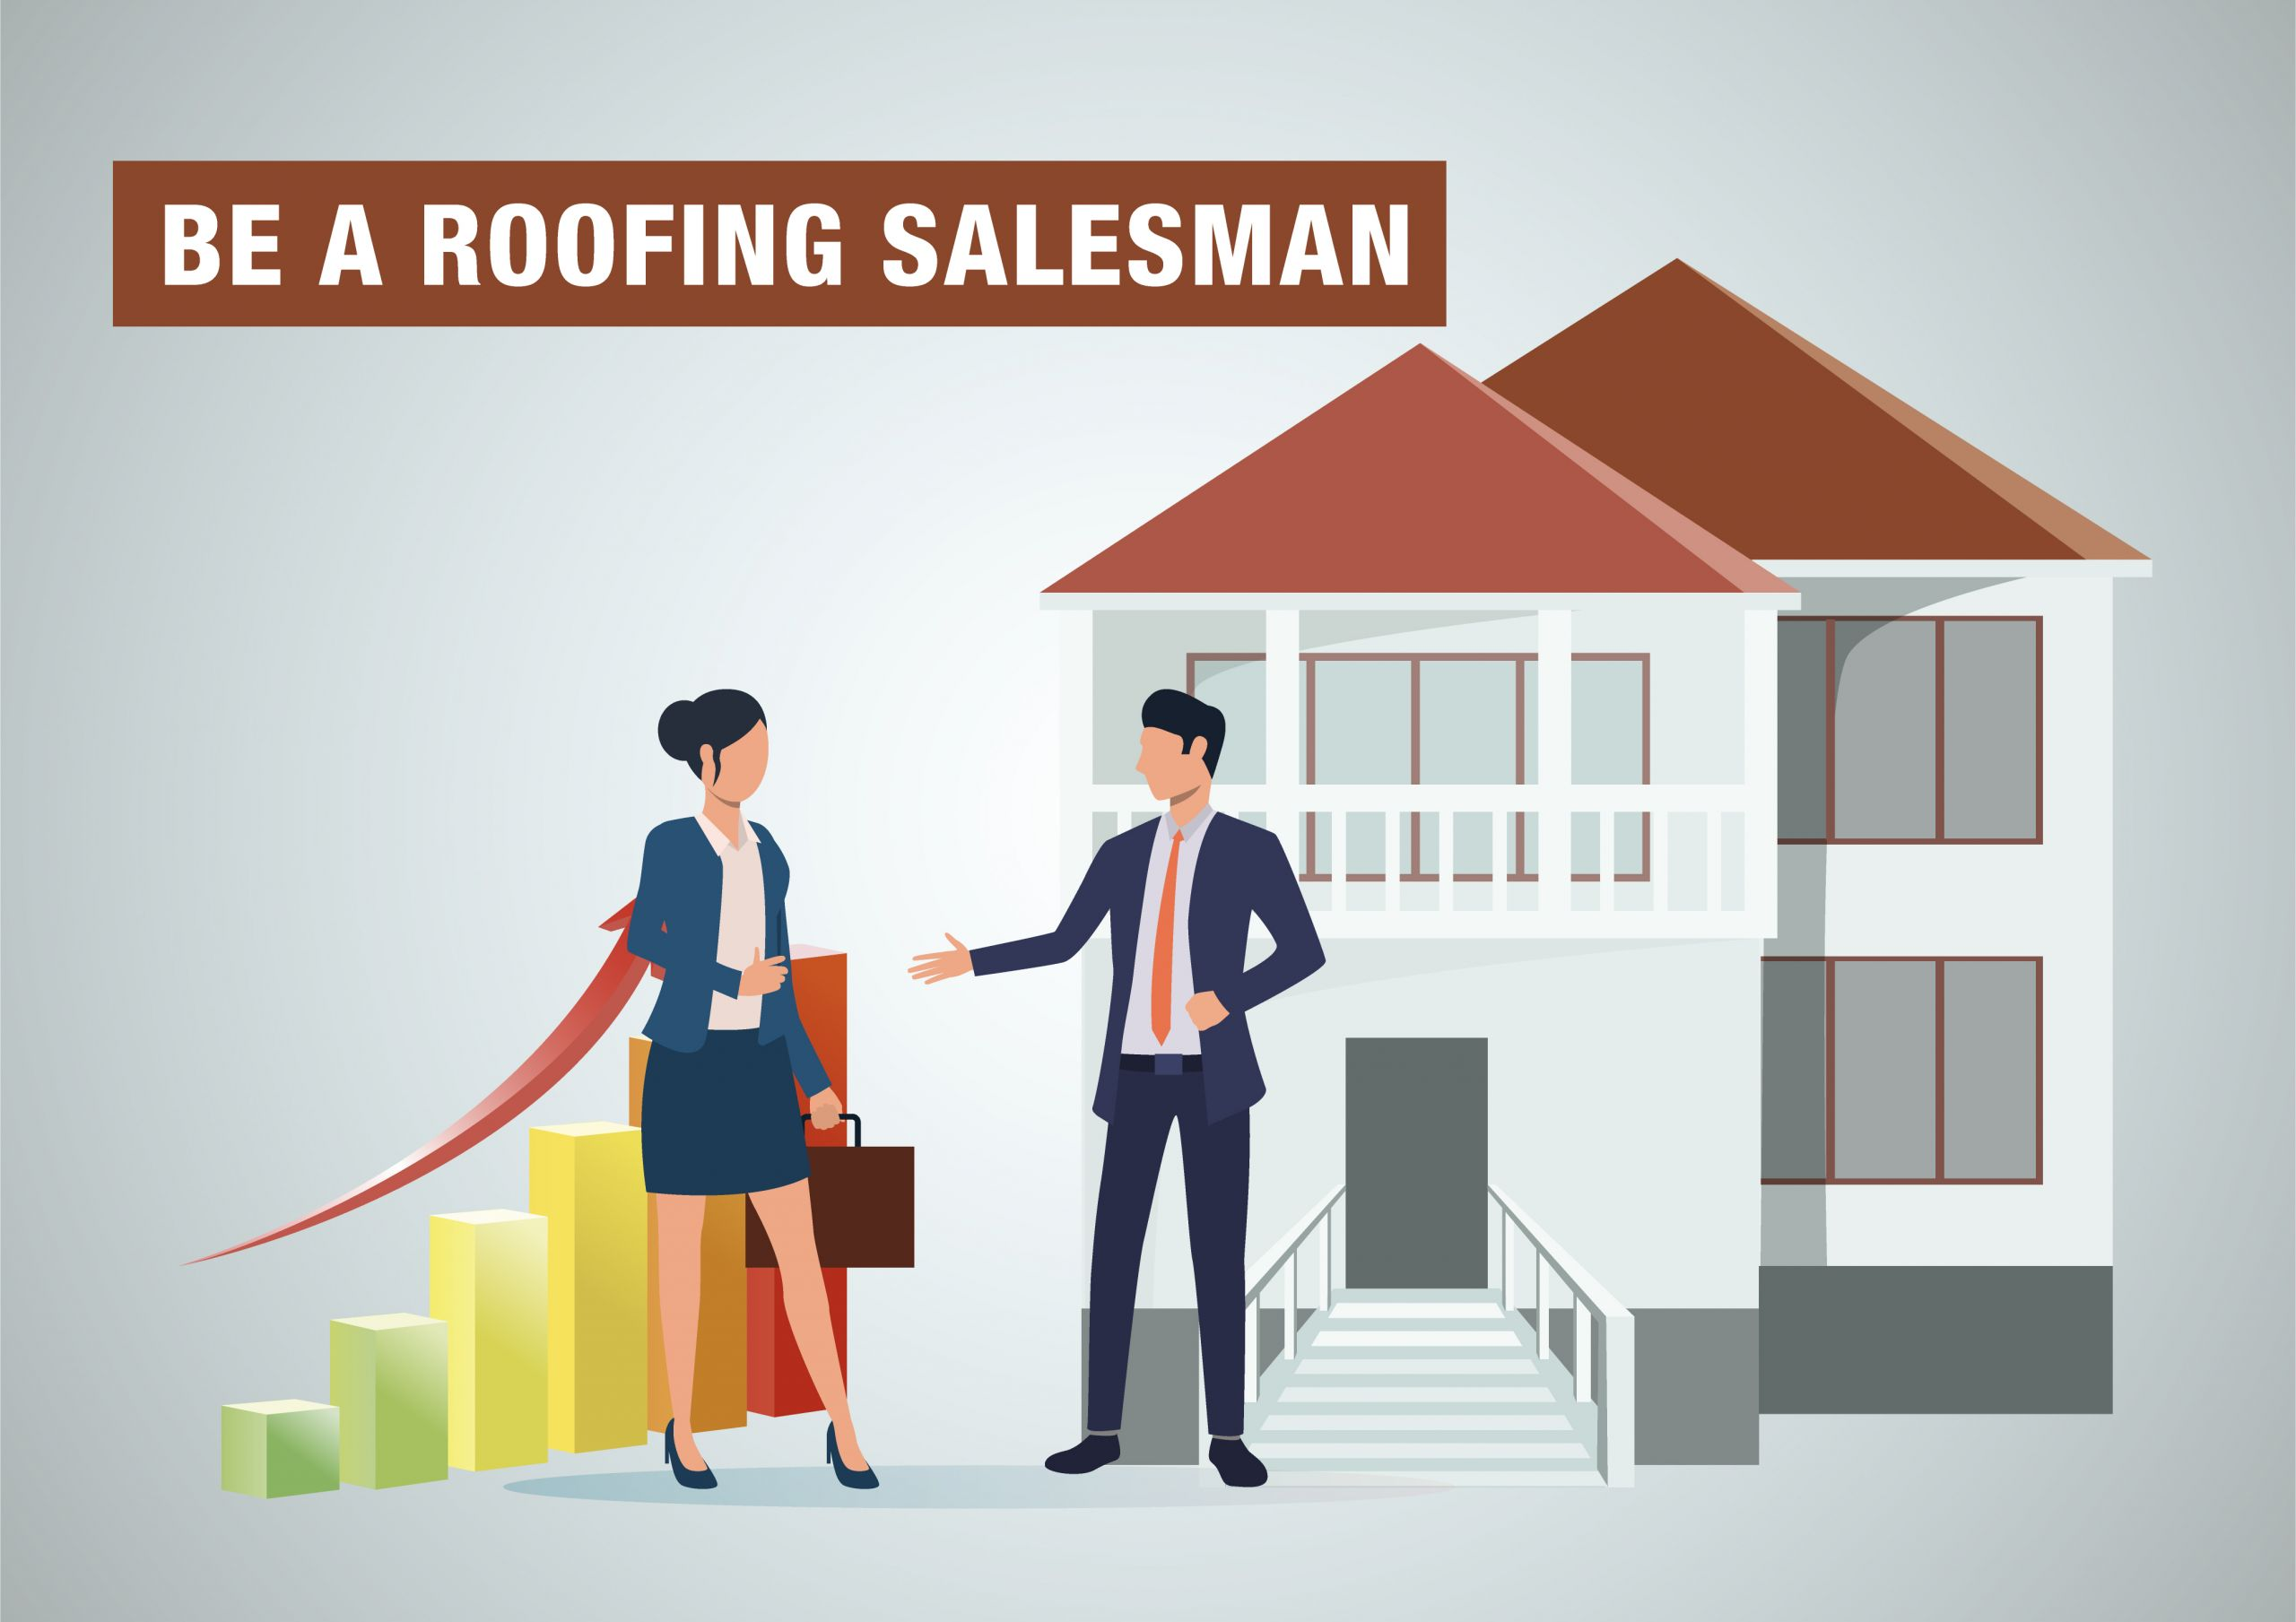 image of roofing sales salary - how much money roofing salesmen make?